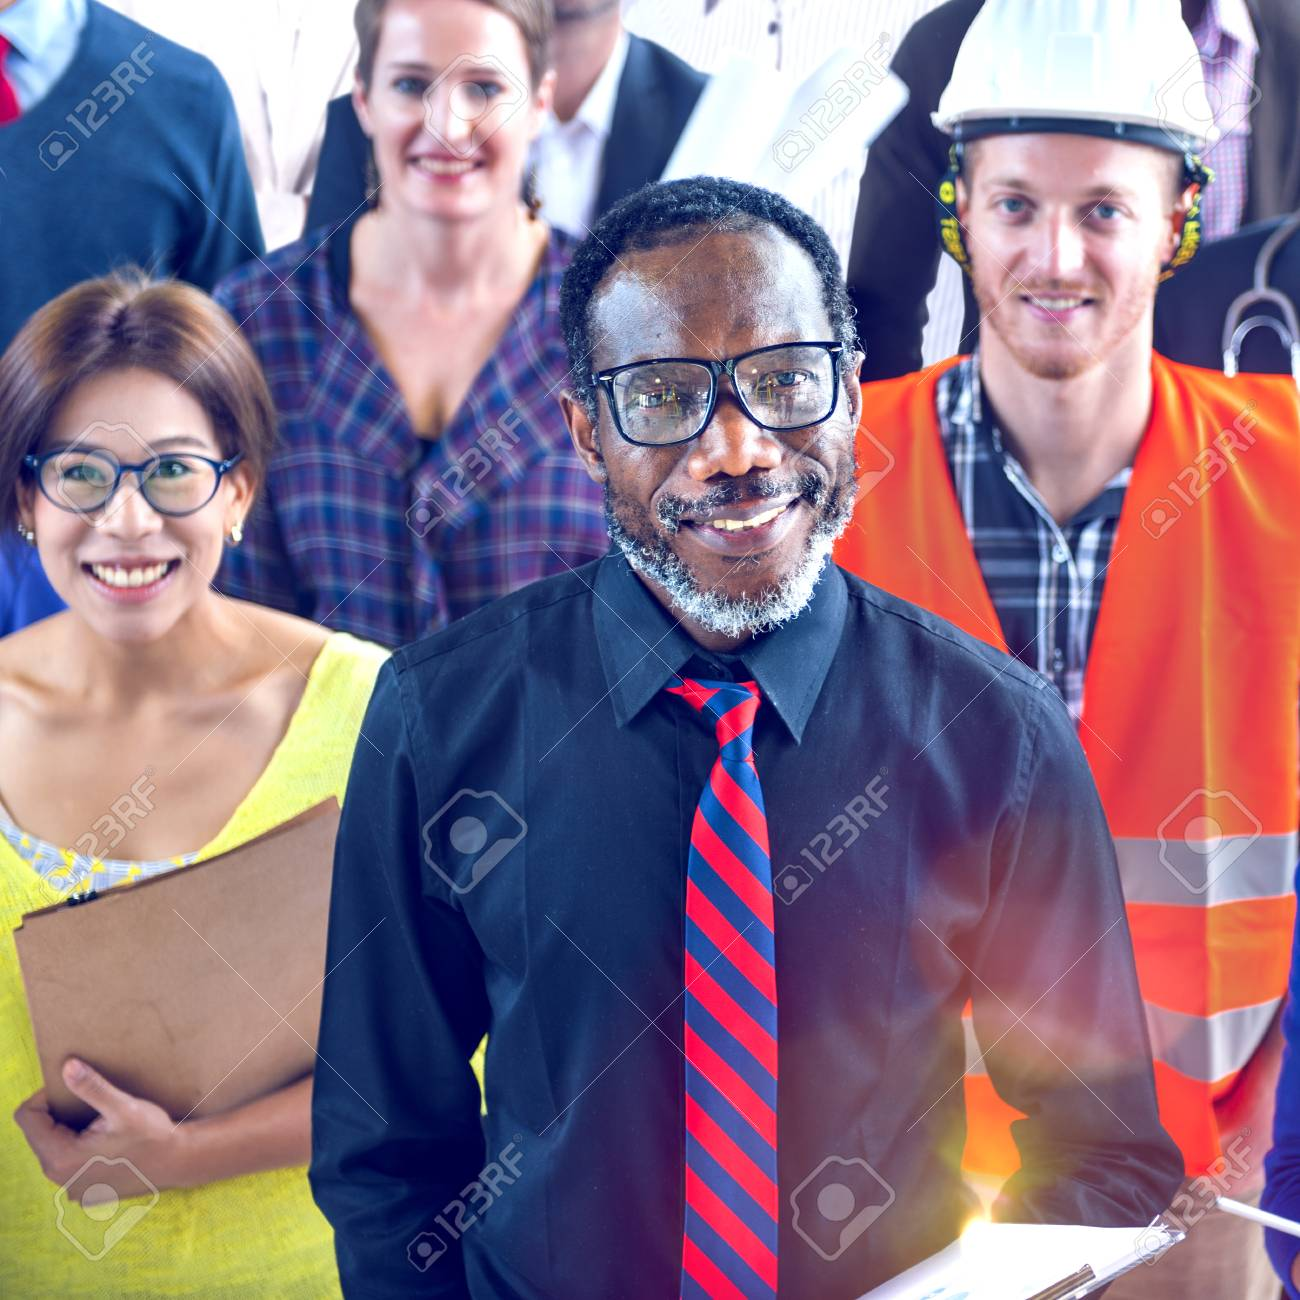 multi ethnic group of people with various occupations concept stock